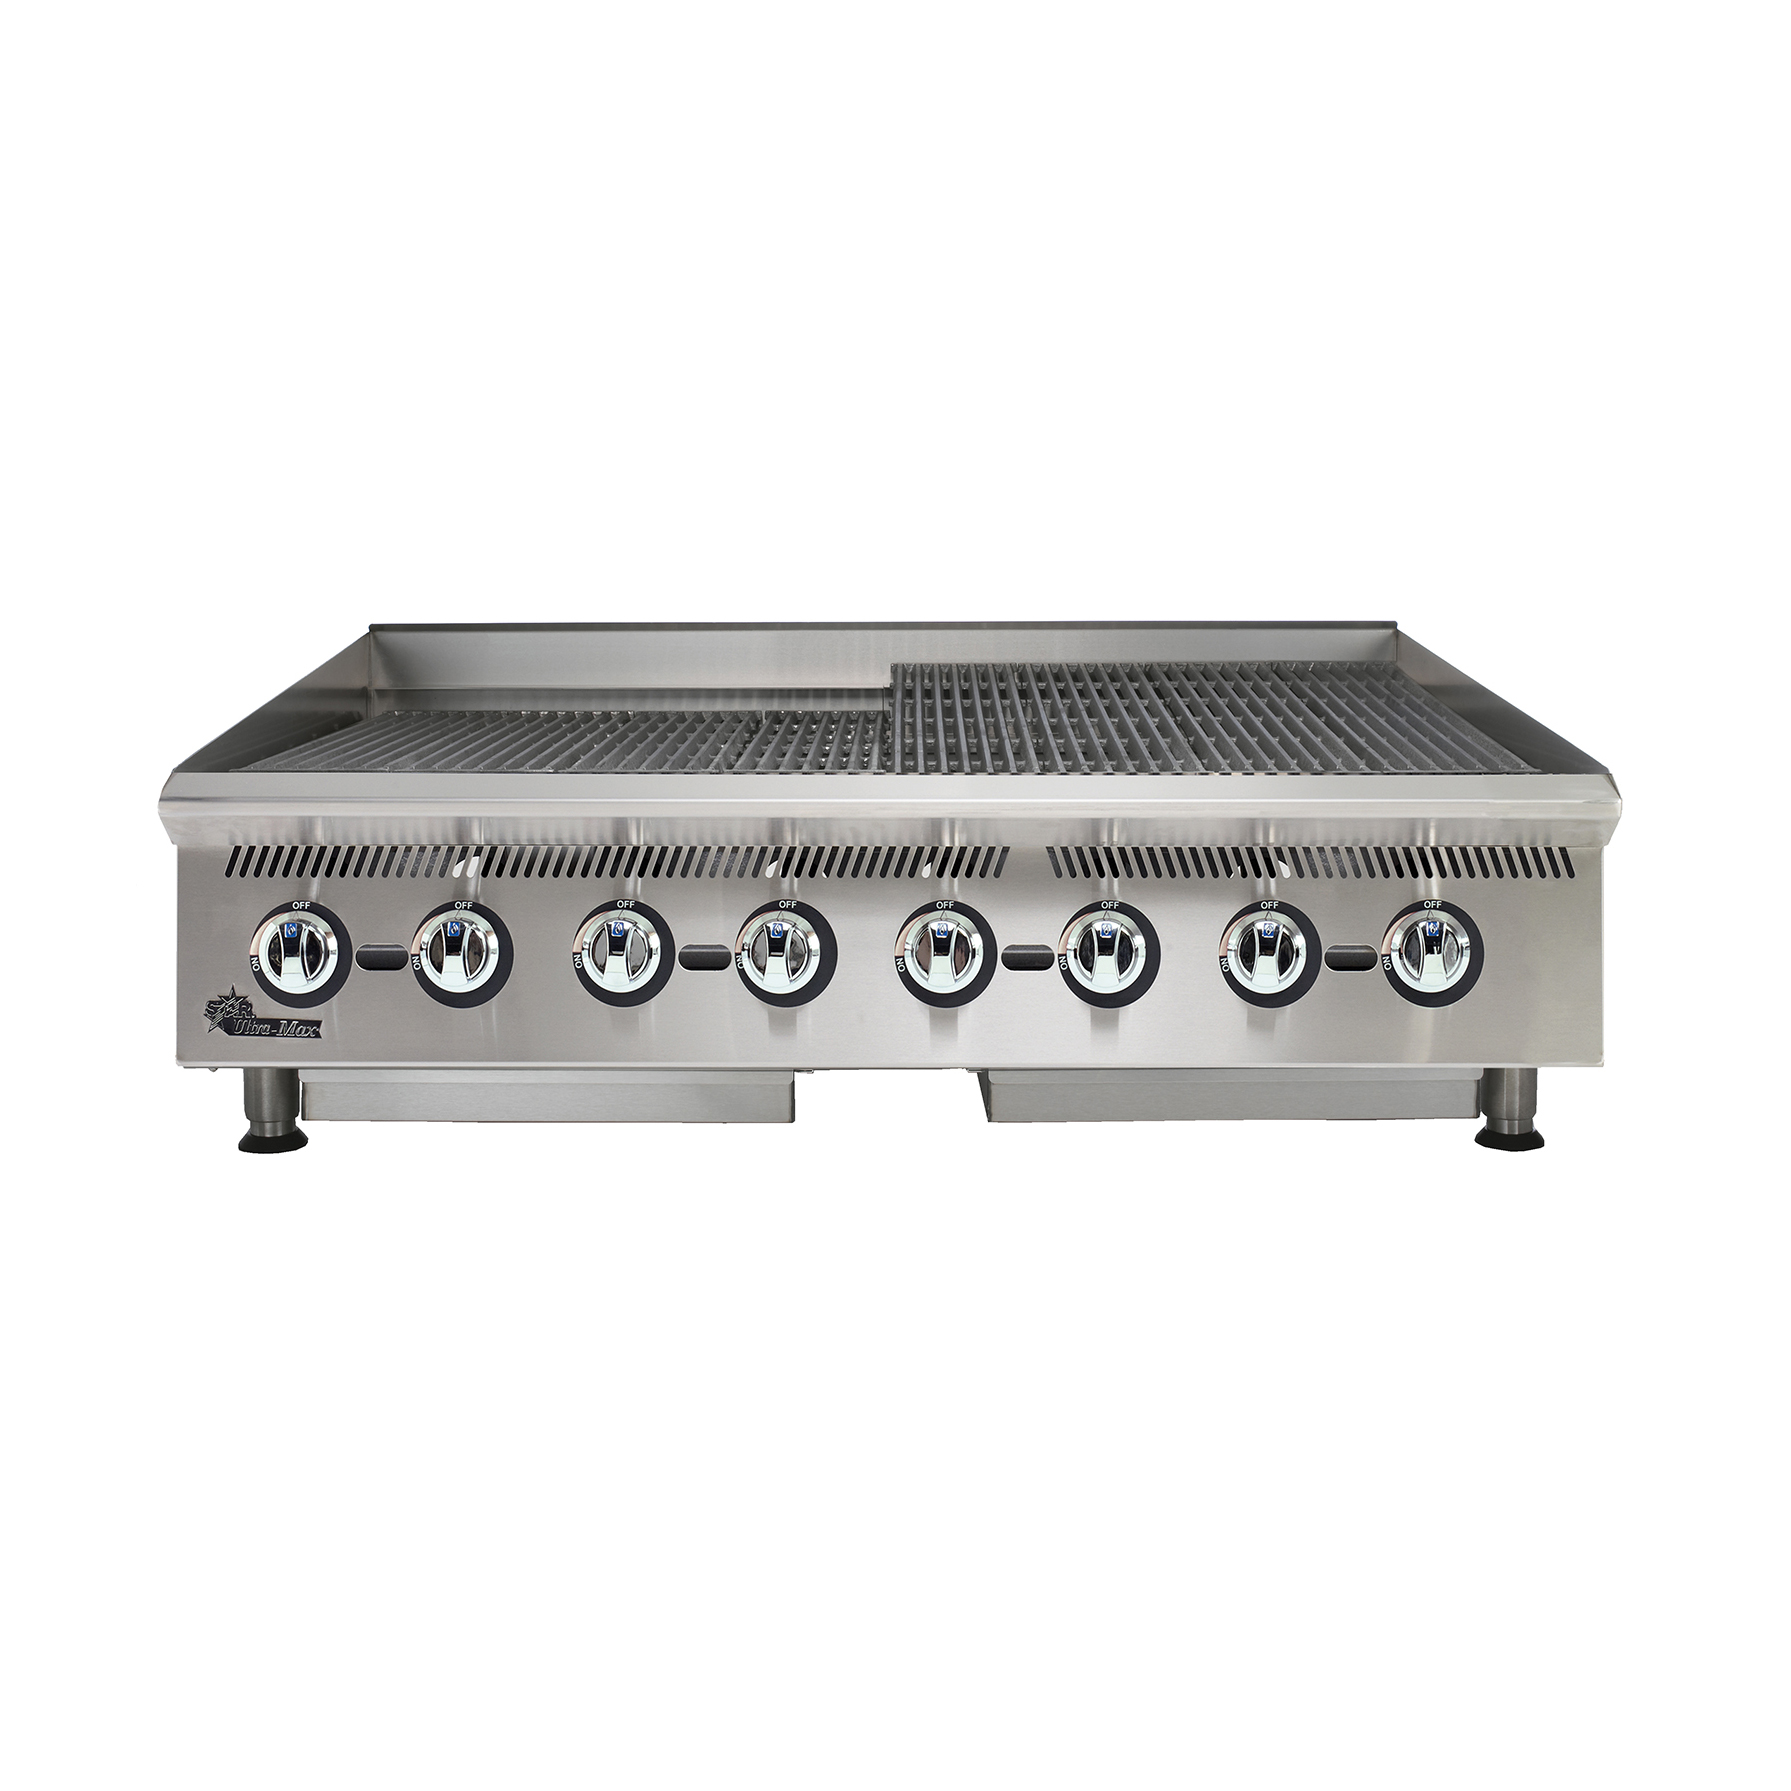 Star 8048CBB charbroiler, gas, countertop